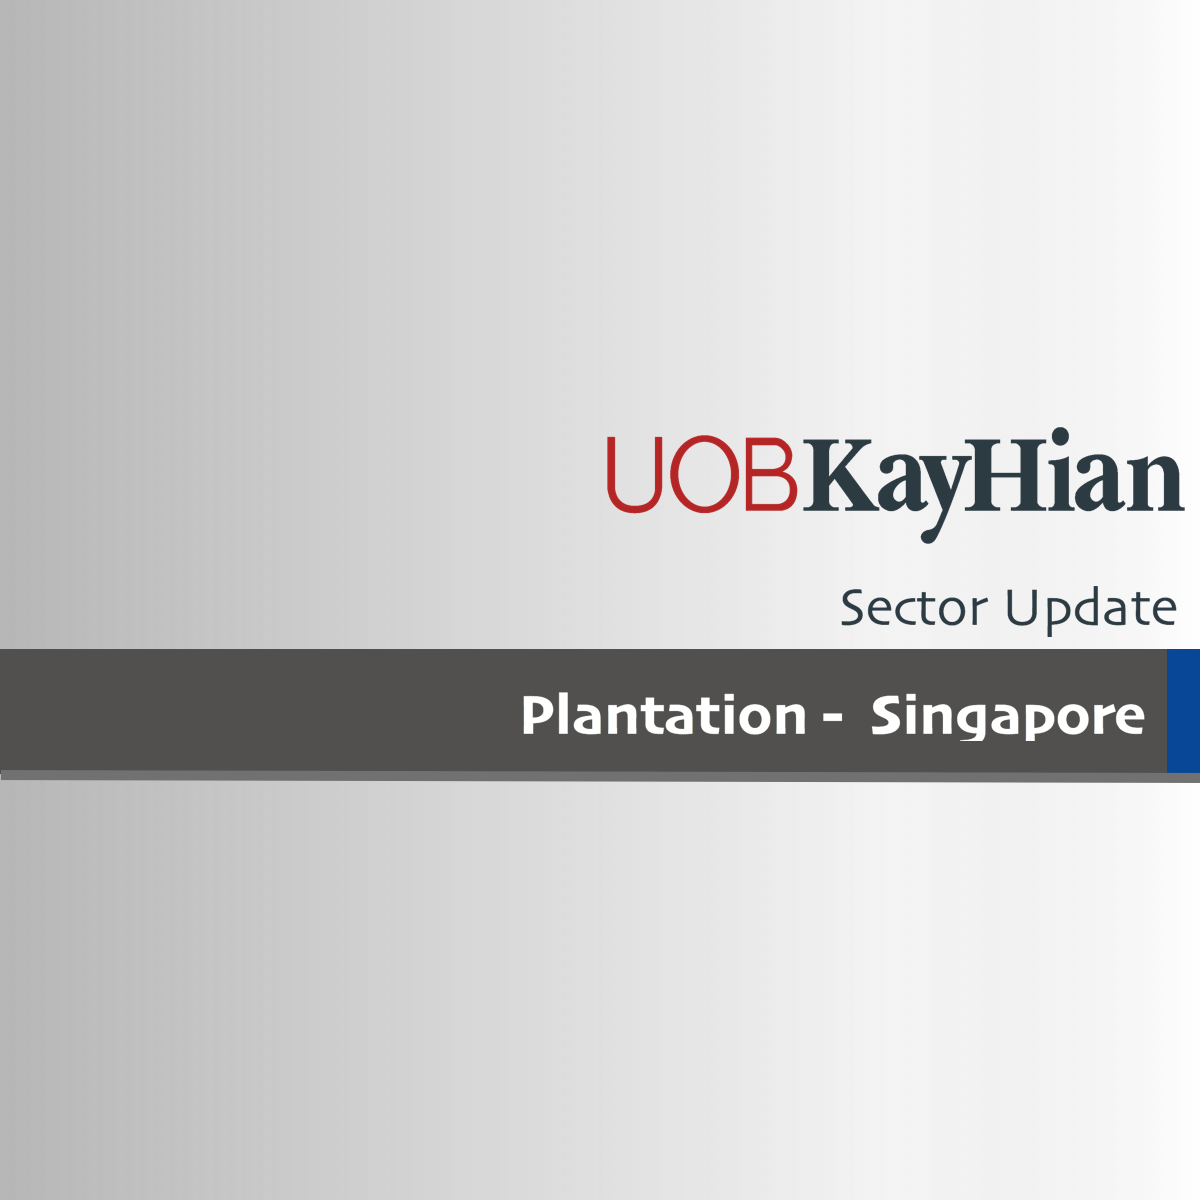 Plantation - UOB Kay Hian 2016-11-22: 3Q16 Results Review ~ Pick-up In Production Supports Performance